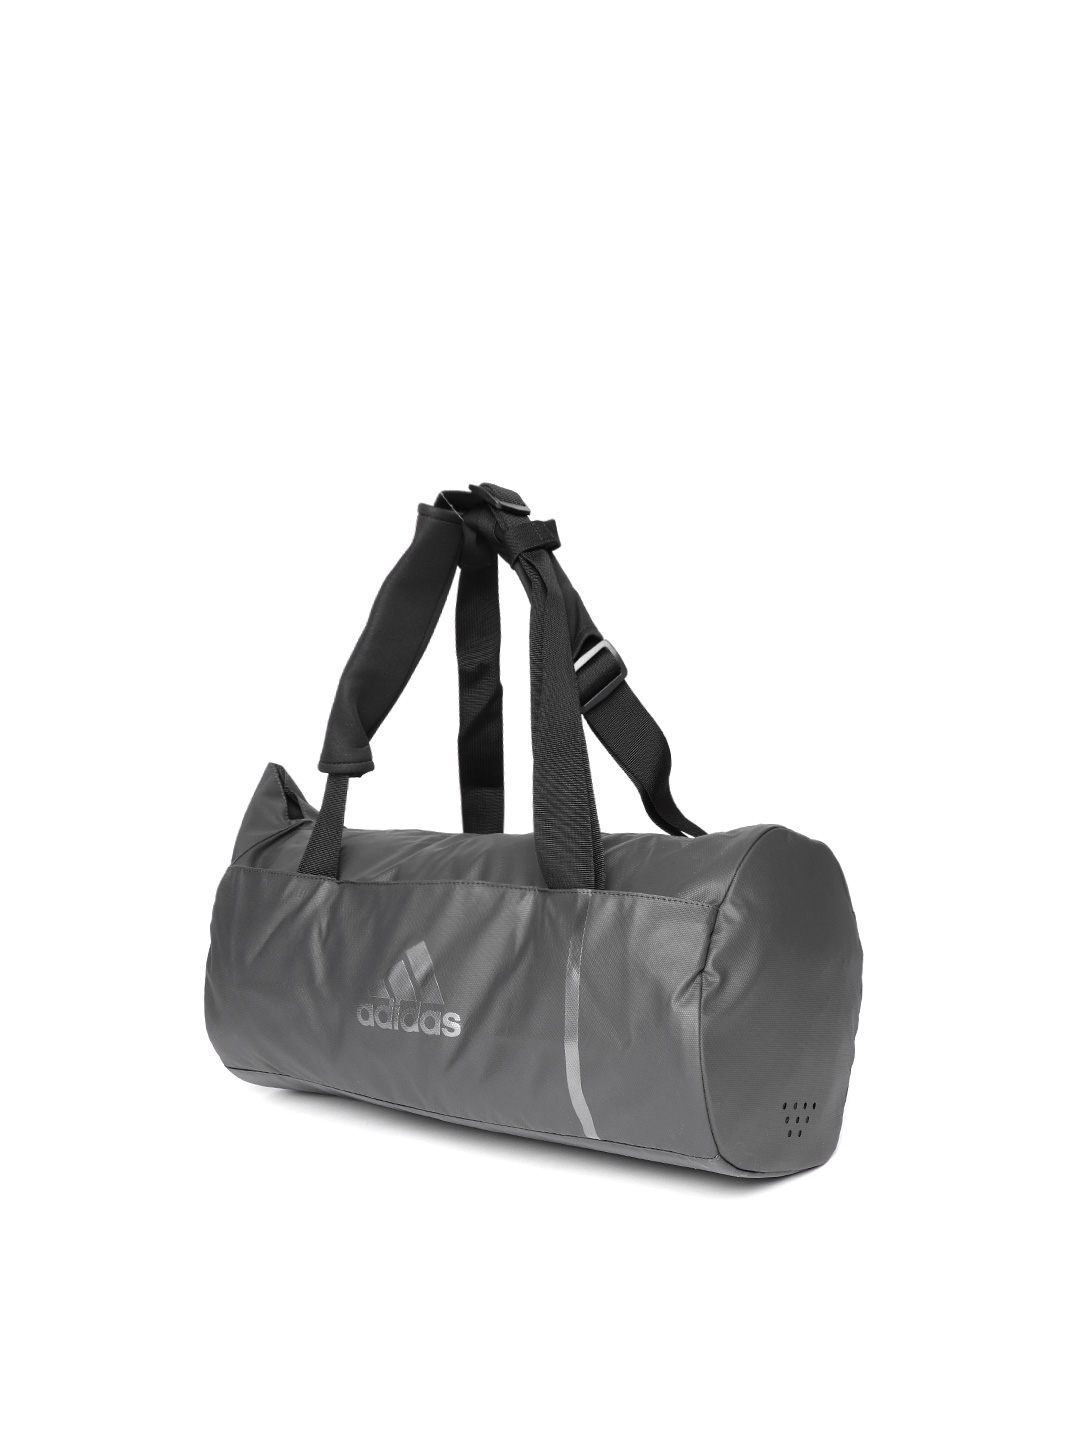 Buy ADIDAS Unisex Grey Convertible Training Duffle Bag Cum Backpack ... a77452043b8aa